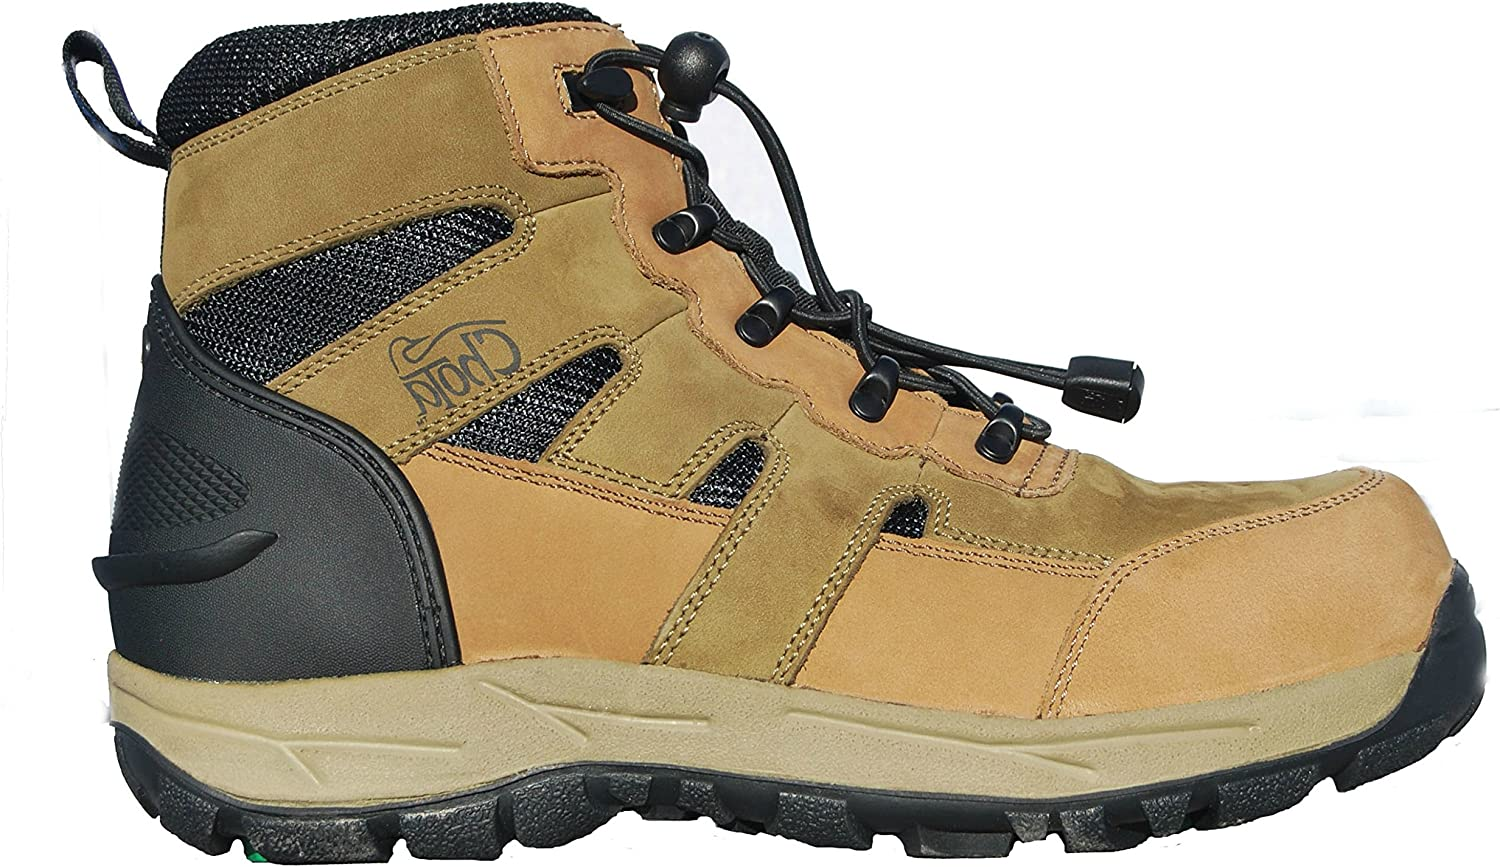 Chota Outdoor Gear Direct sale of manufacturer Wading Boots - Fork Rubber Free shipping Soled Caney